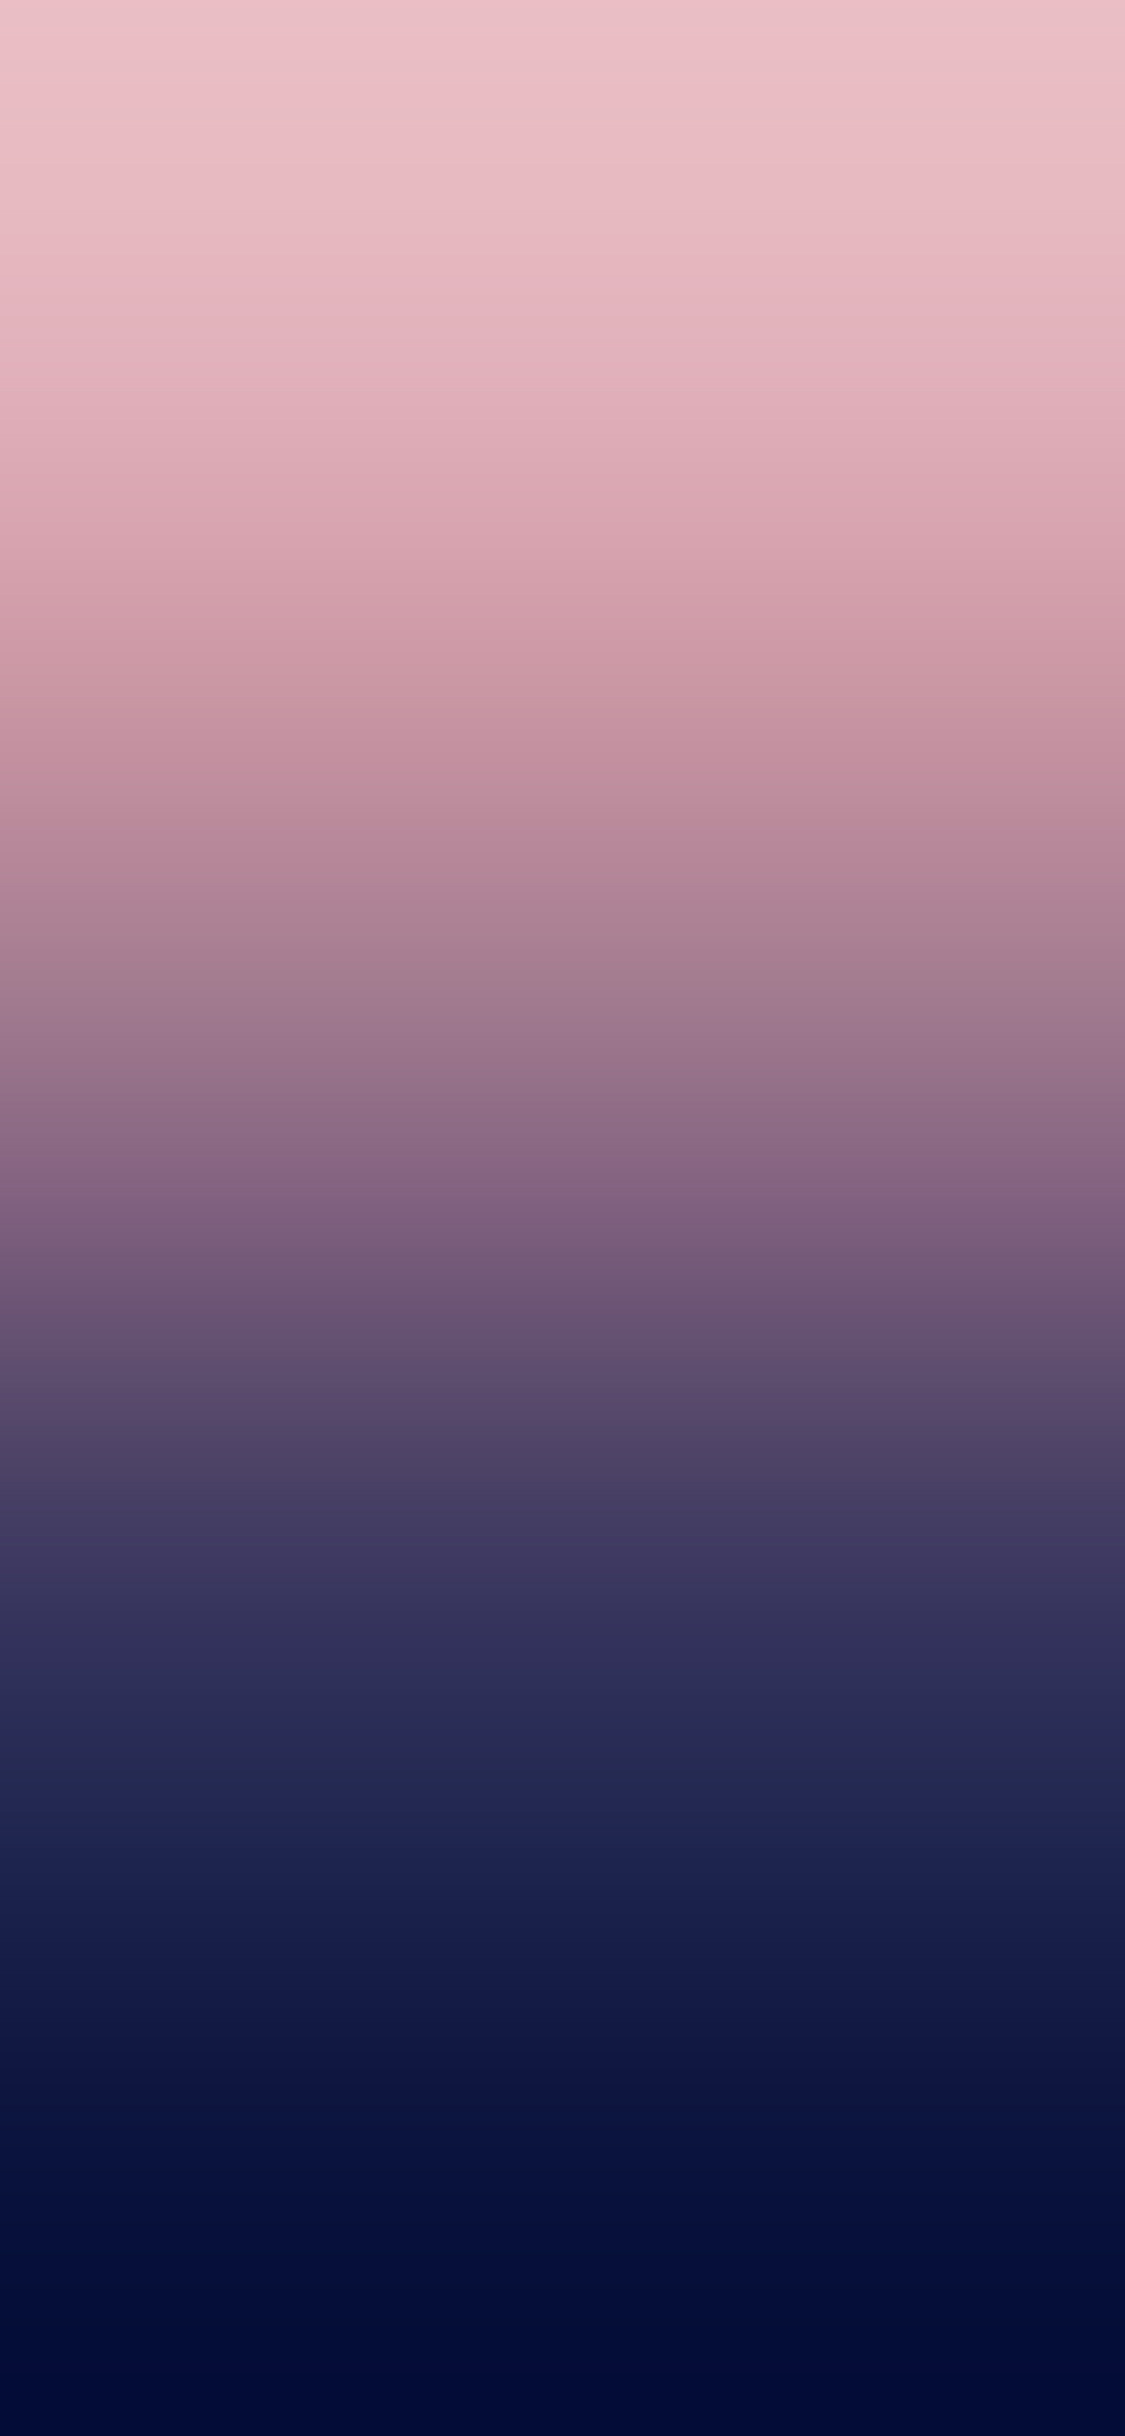 iPhoneXpapers.com-Apple-iPhone-wallpaper-sk88-pink-blue-blur-gradation